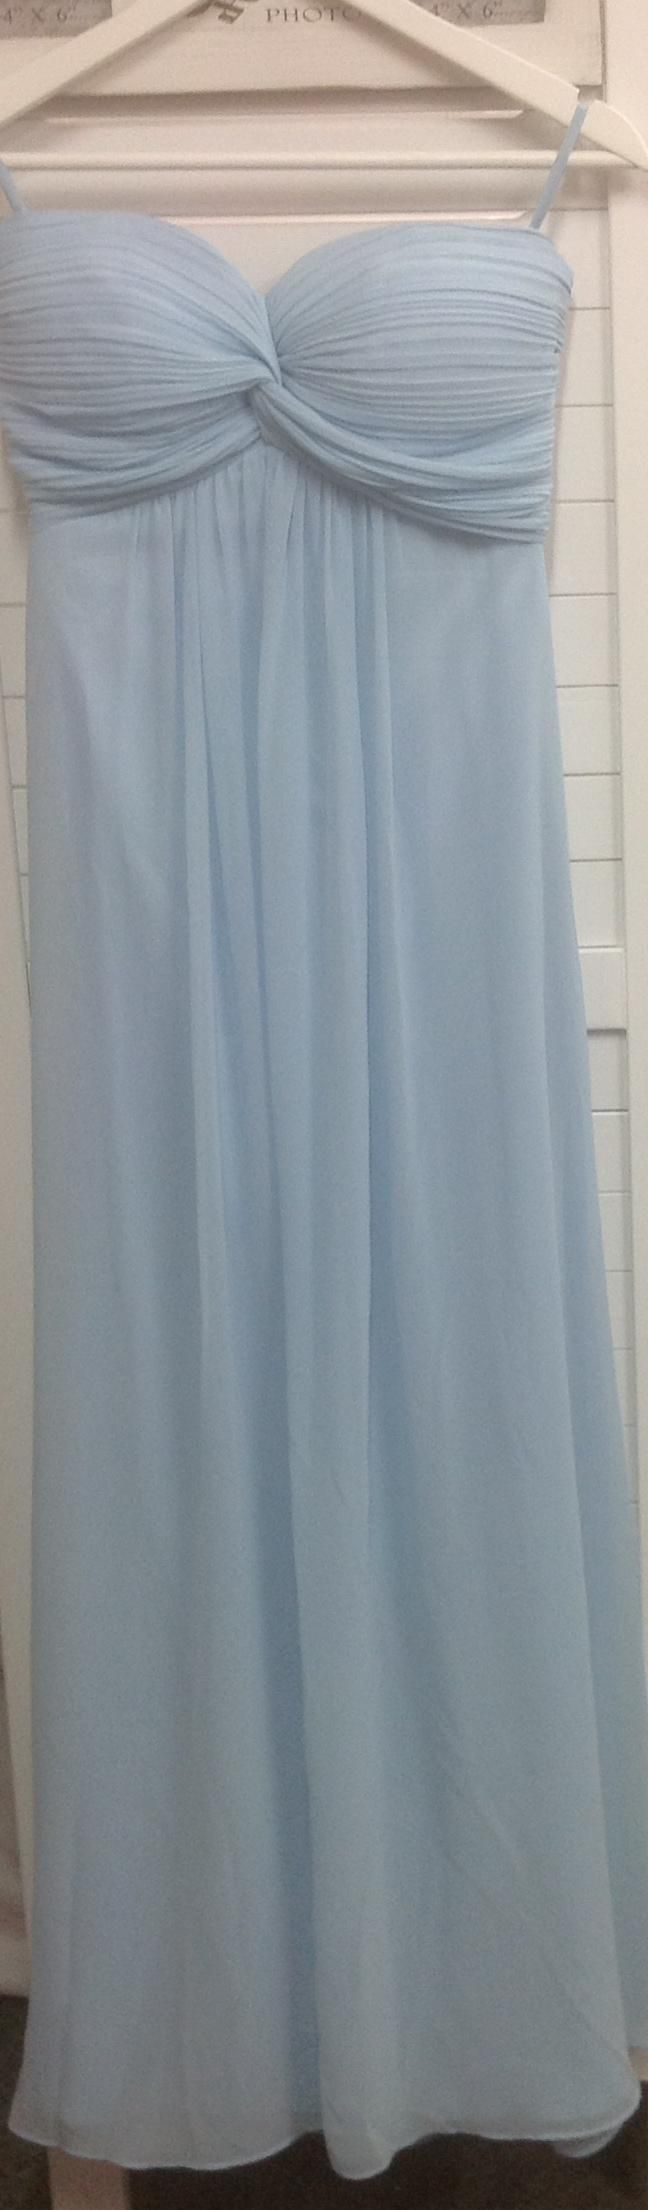 BM085 full length, chiffon, strapless bridemaid / cocktail dress. $199.00 to buy and $129.00 to hire (for a new gown)